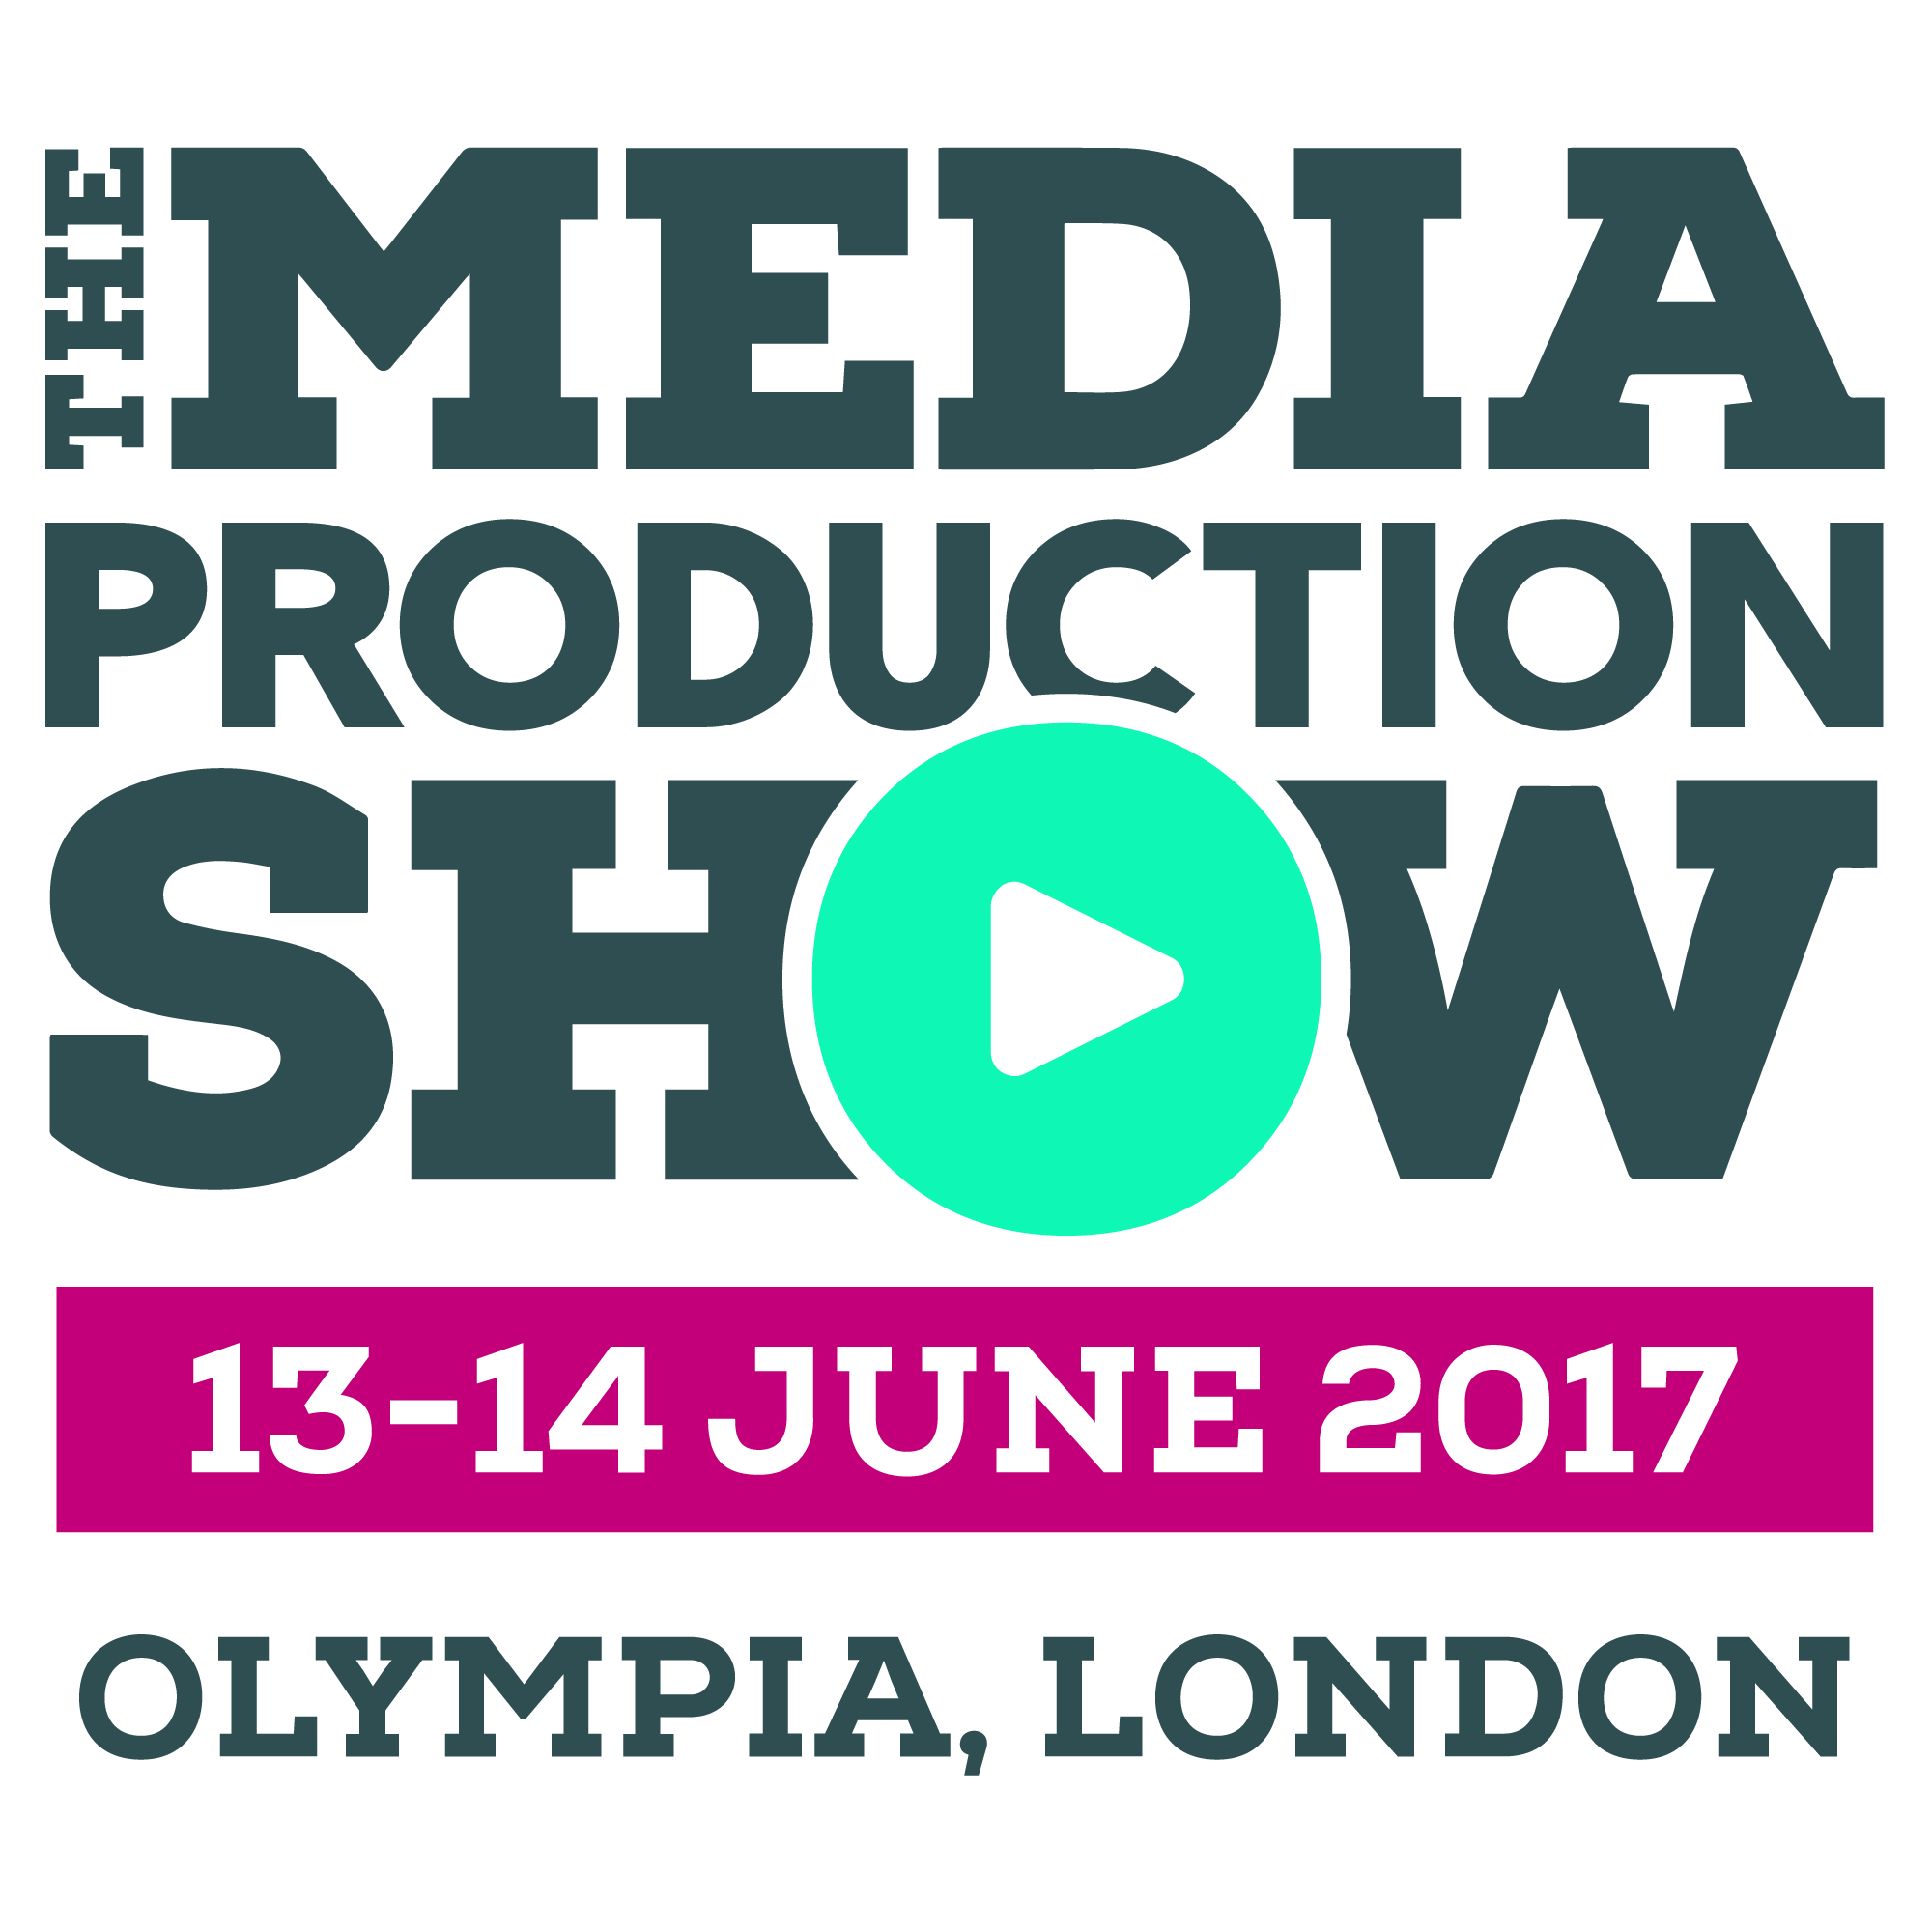 Media Production Show 2017